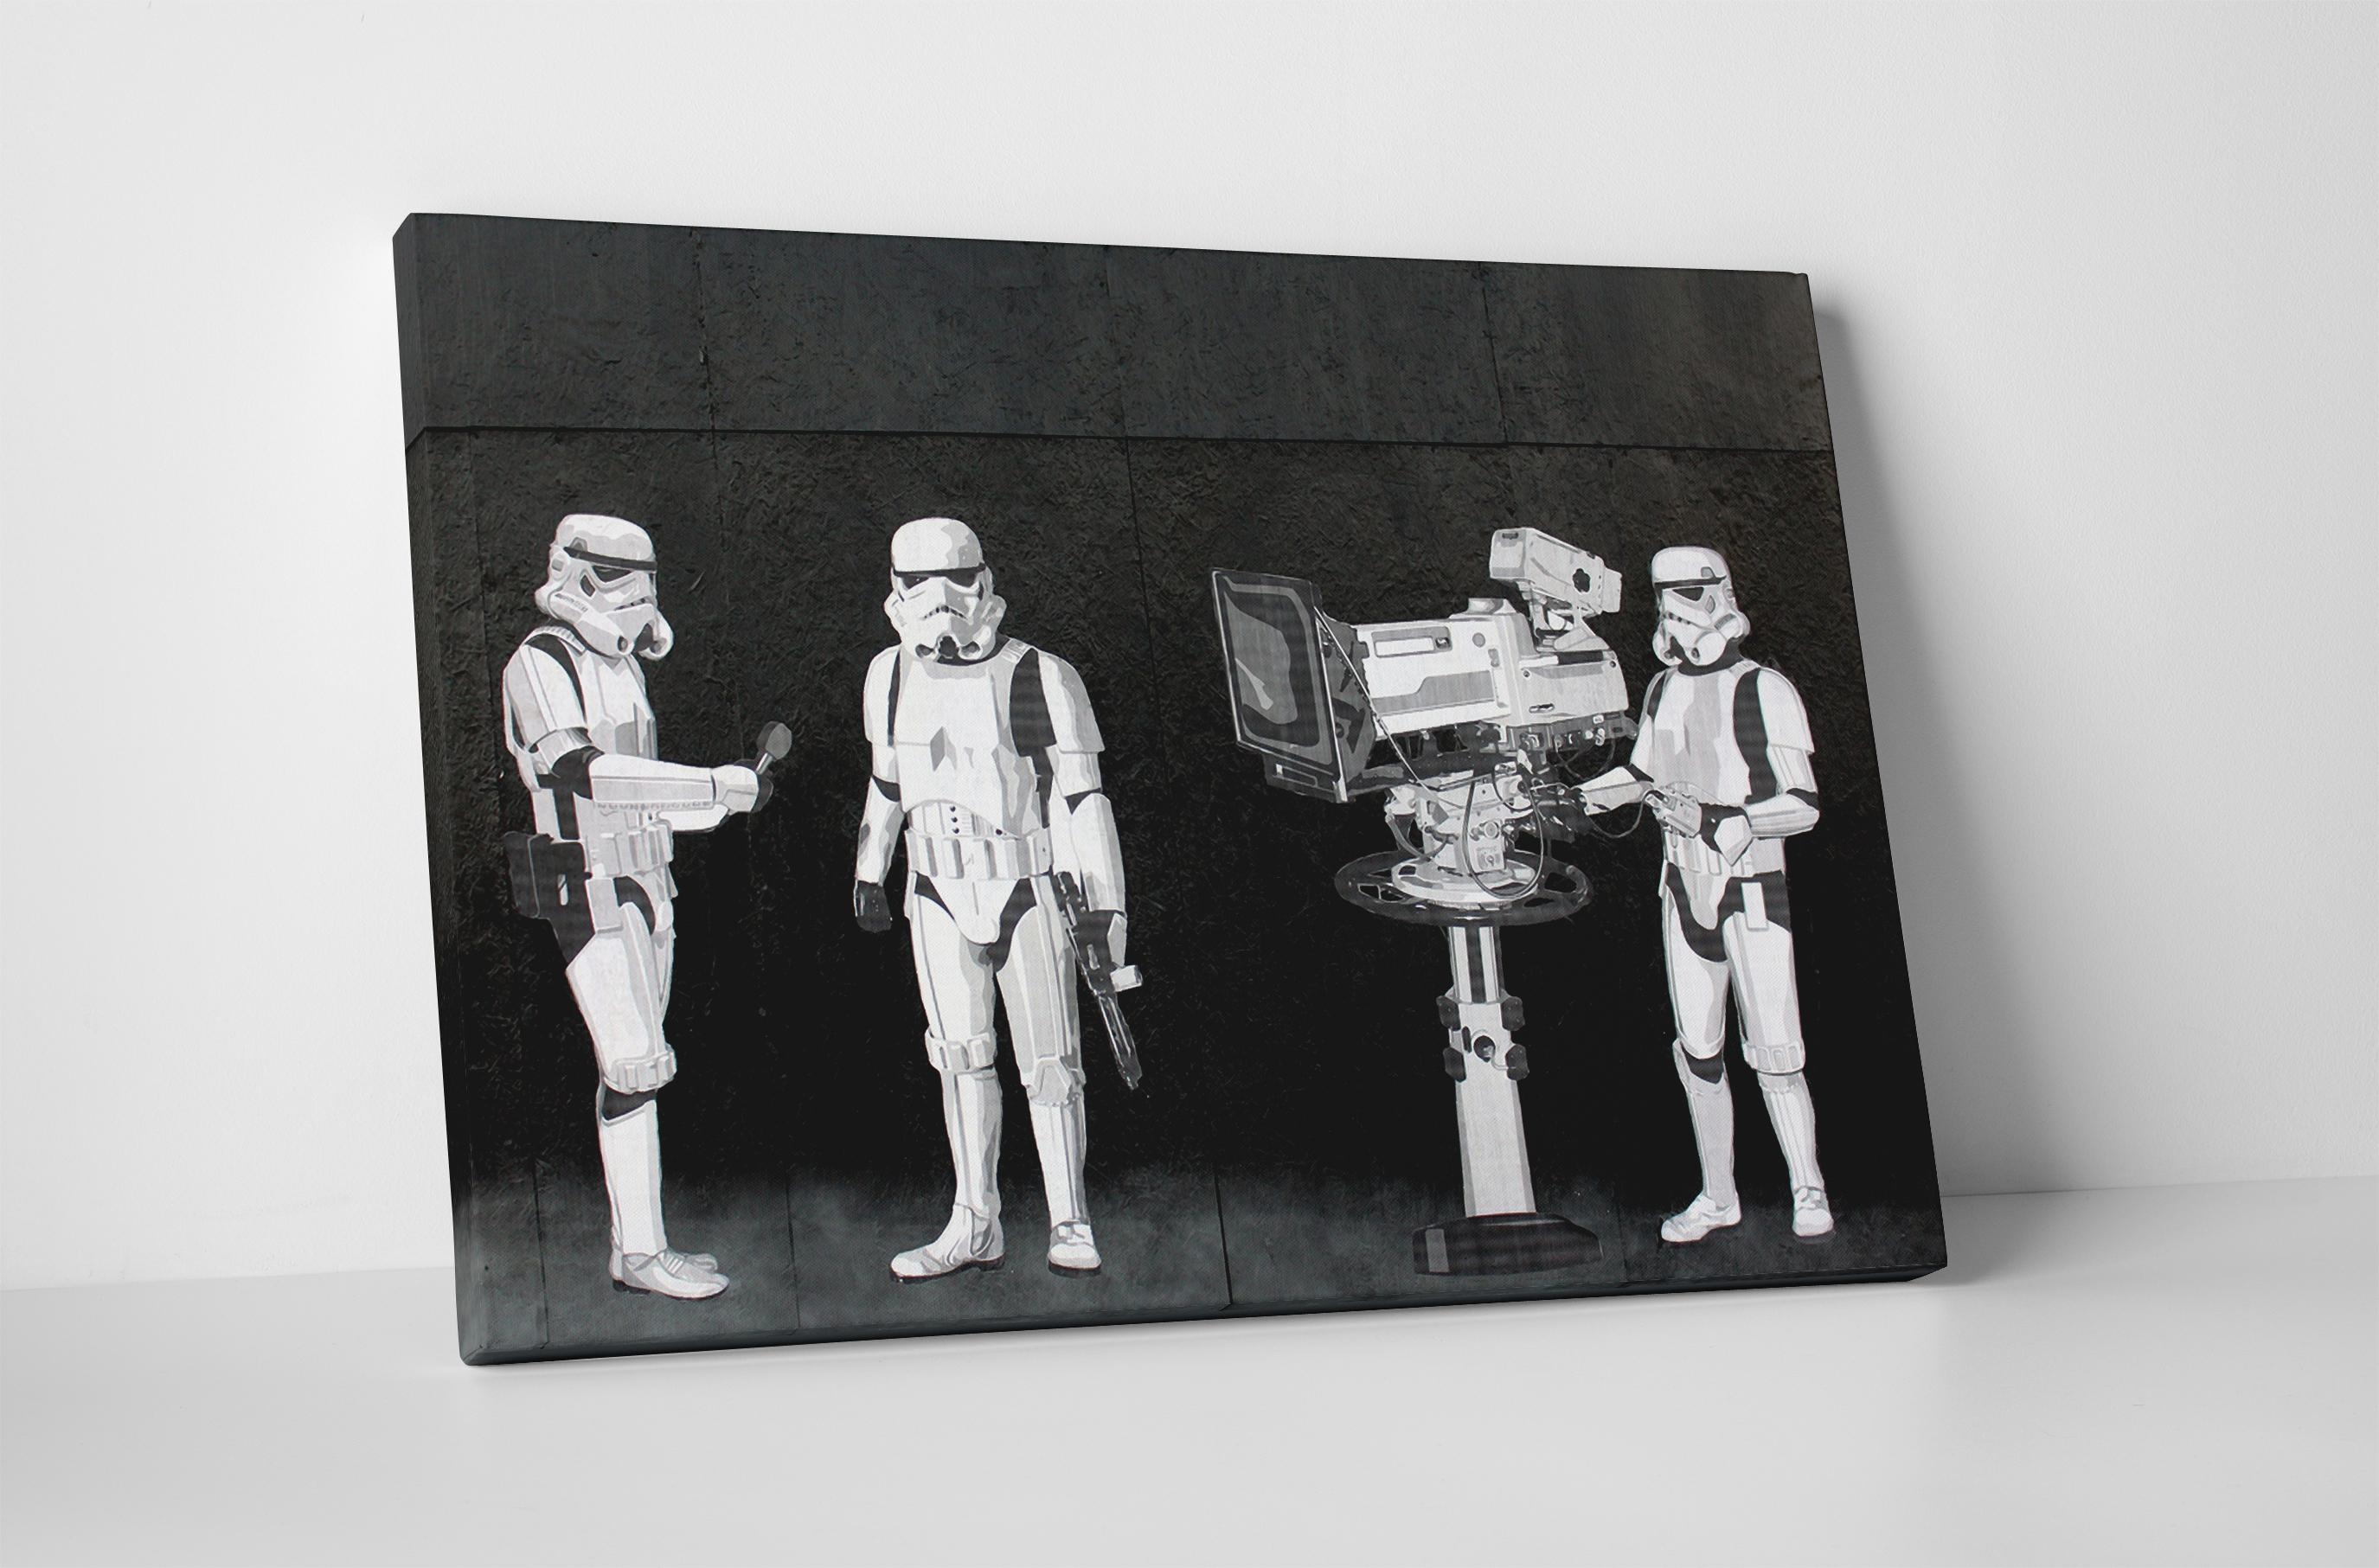 Banksy Stormtroopers Filming Oscars Canvas Wall Art Regarding Banksy Wall Art Canvas (Image 11 of 20)